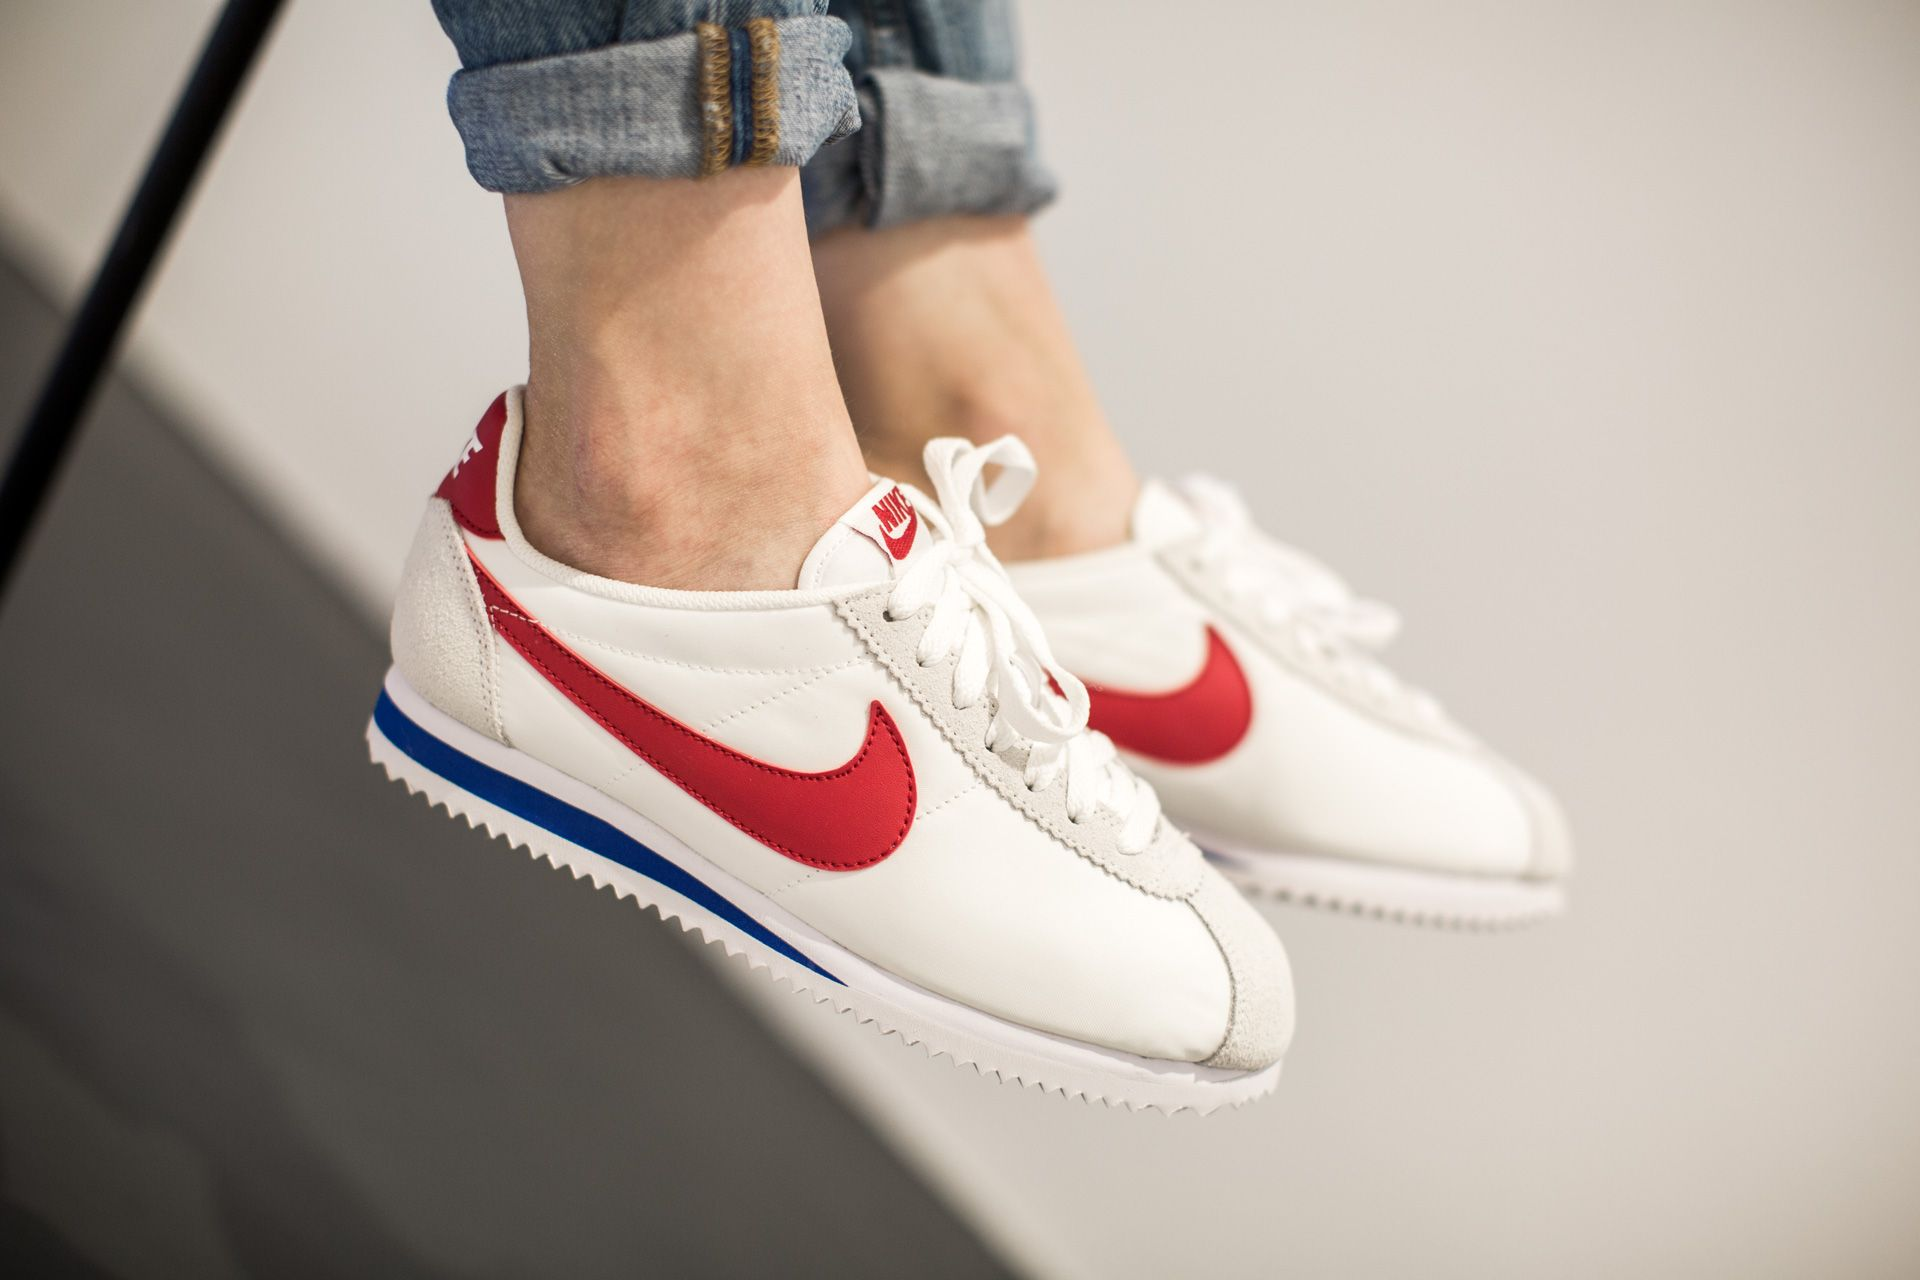 NIKE CLASSIC CORTEZ NYLON WHITE/VARSITY RED-VRSTY ROYAL available at  www.tint